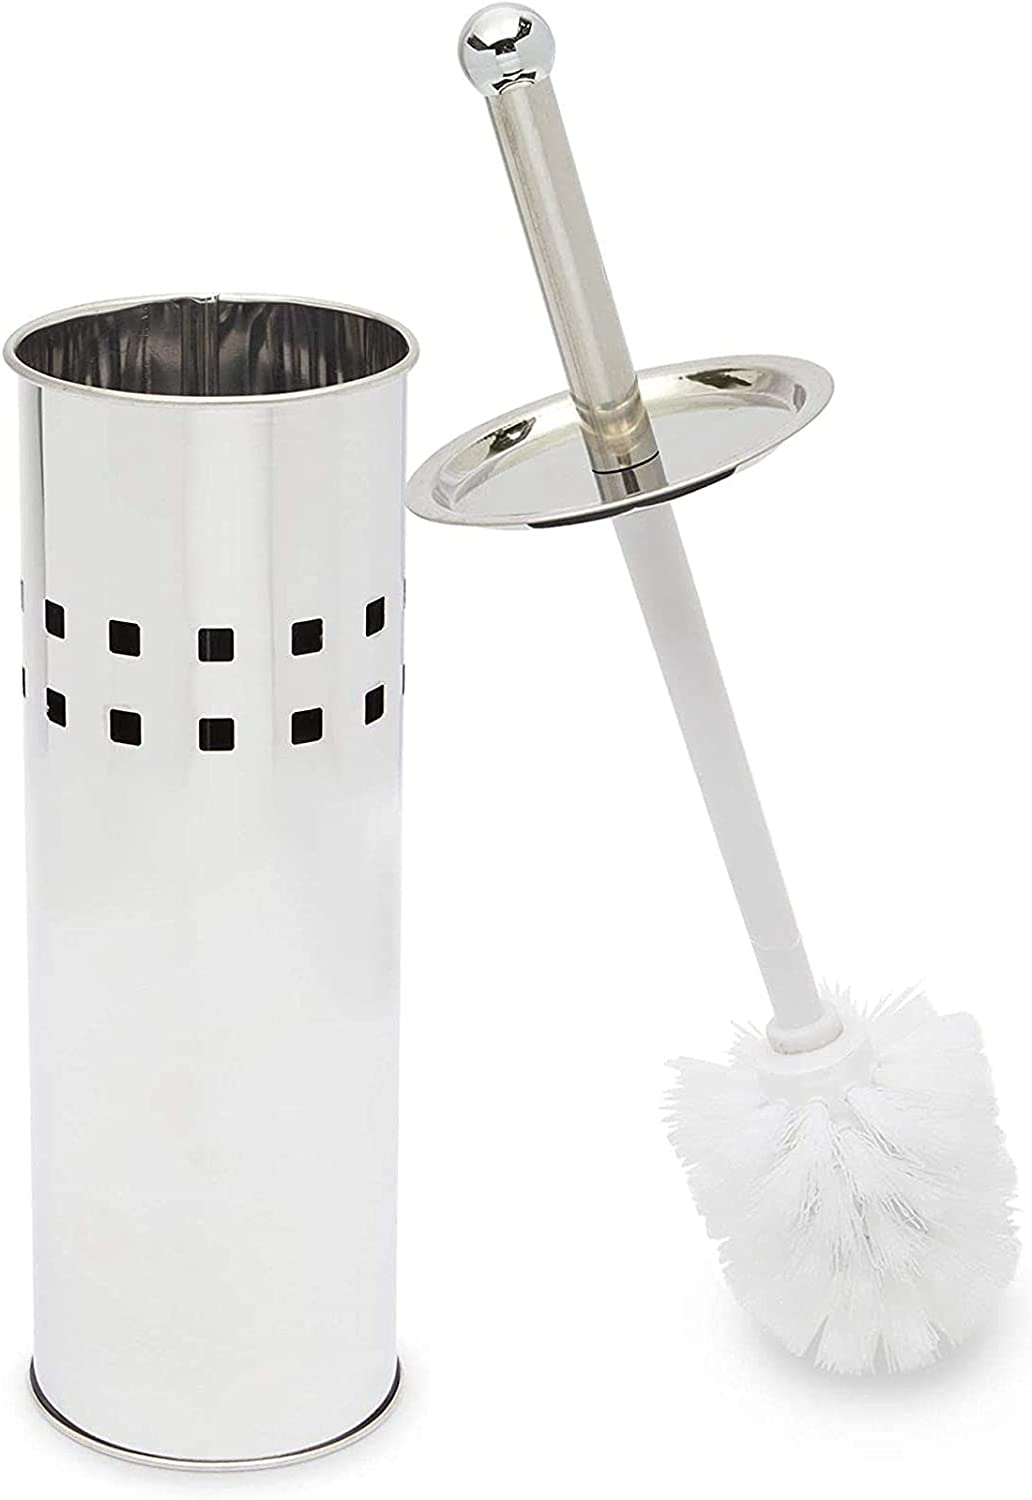 Stainless Steel Toilet Brush with Ranking TOP10 Holder P 3.6 in x 2 14 Sale